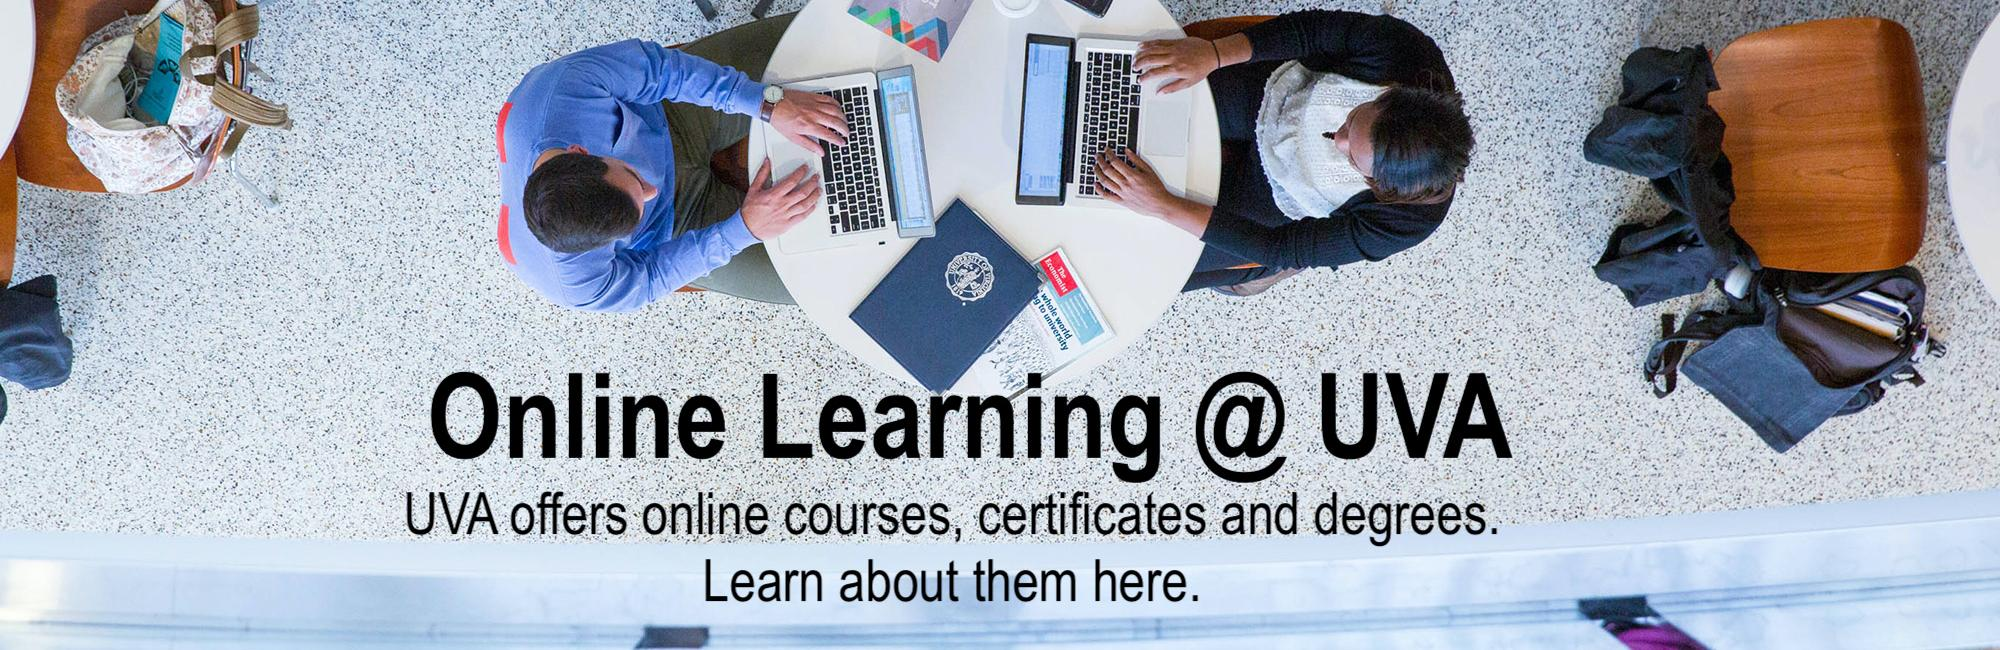 Find online courses, certificates and degrees here.